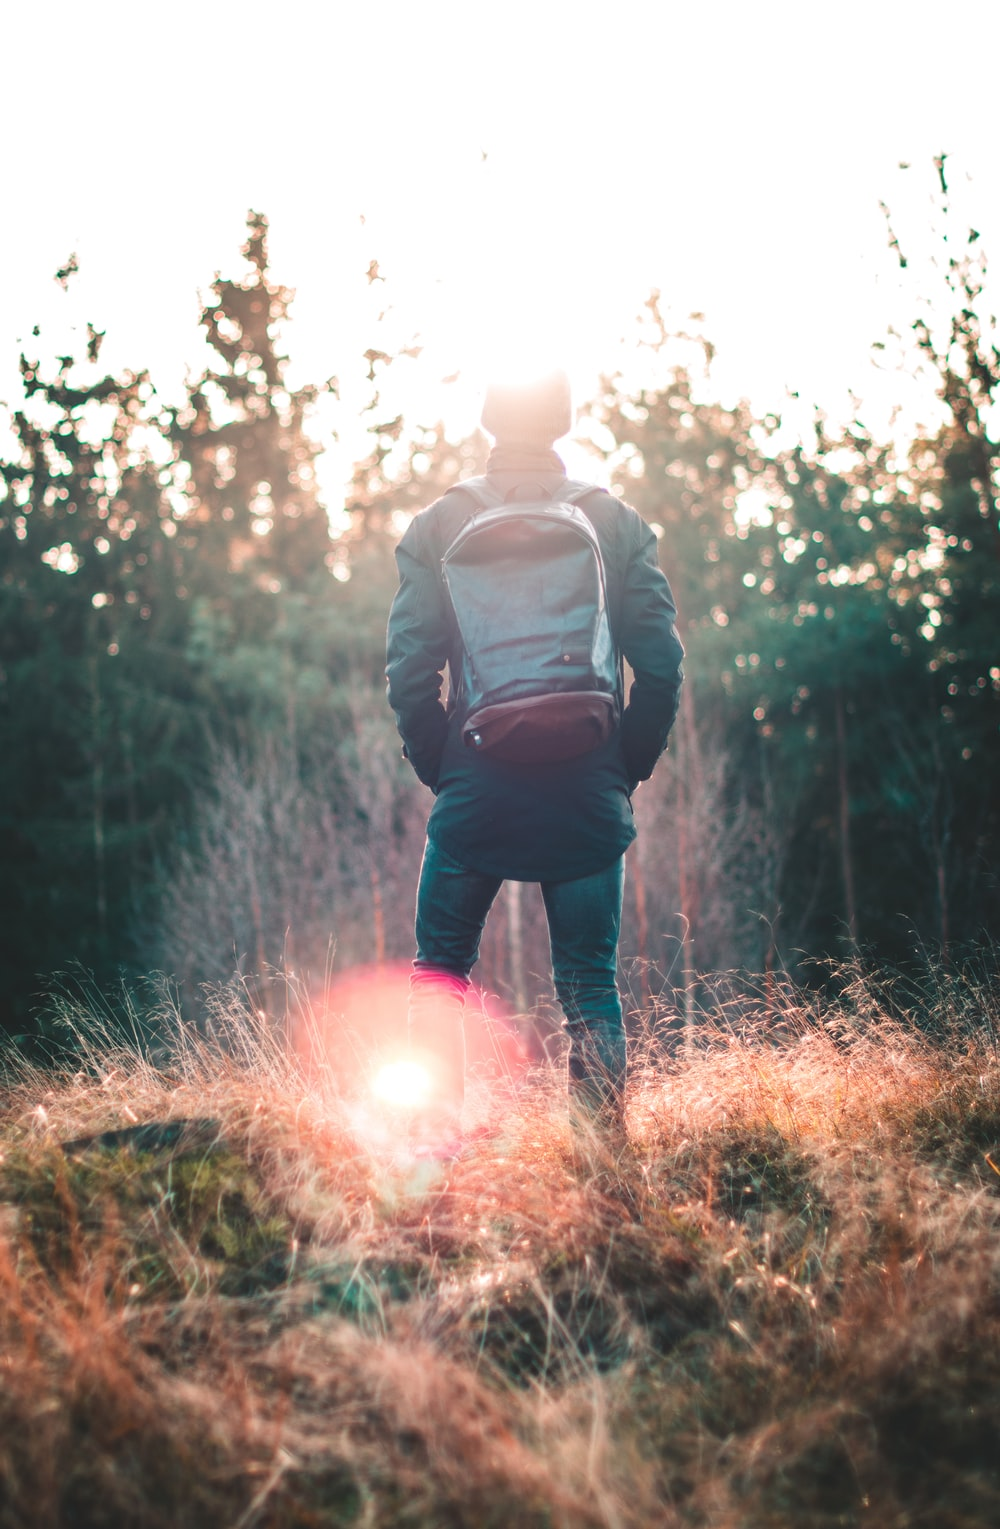 man wearing black backpack in shallow focus photography